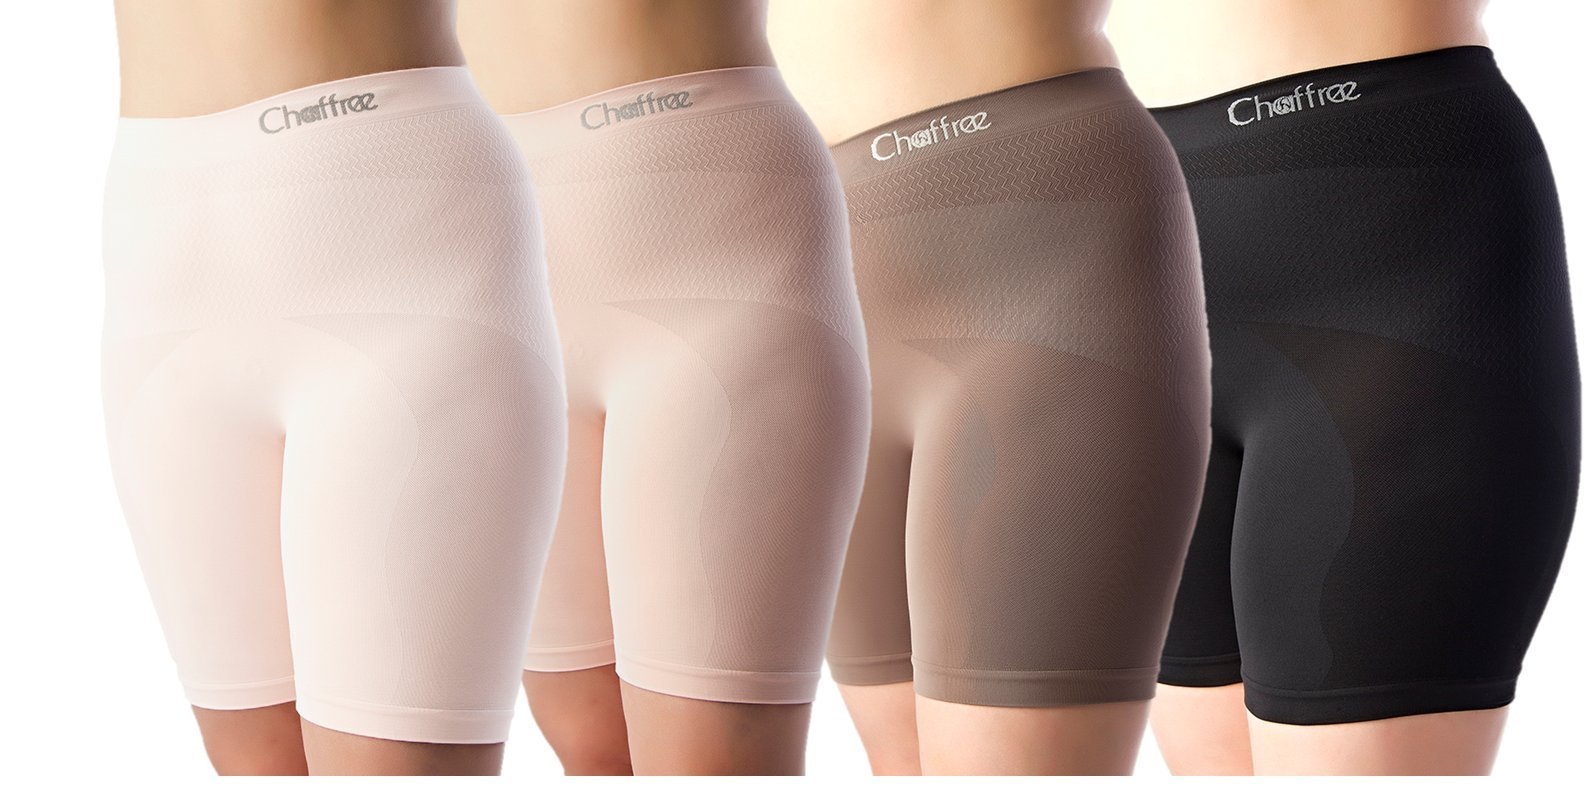 Chaffree Womens Panty, Anti Chafing Full Figure Latex Free Underwear Brief 5Pack